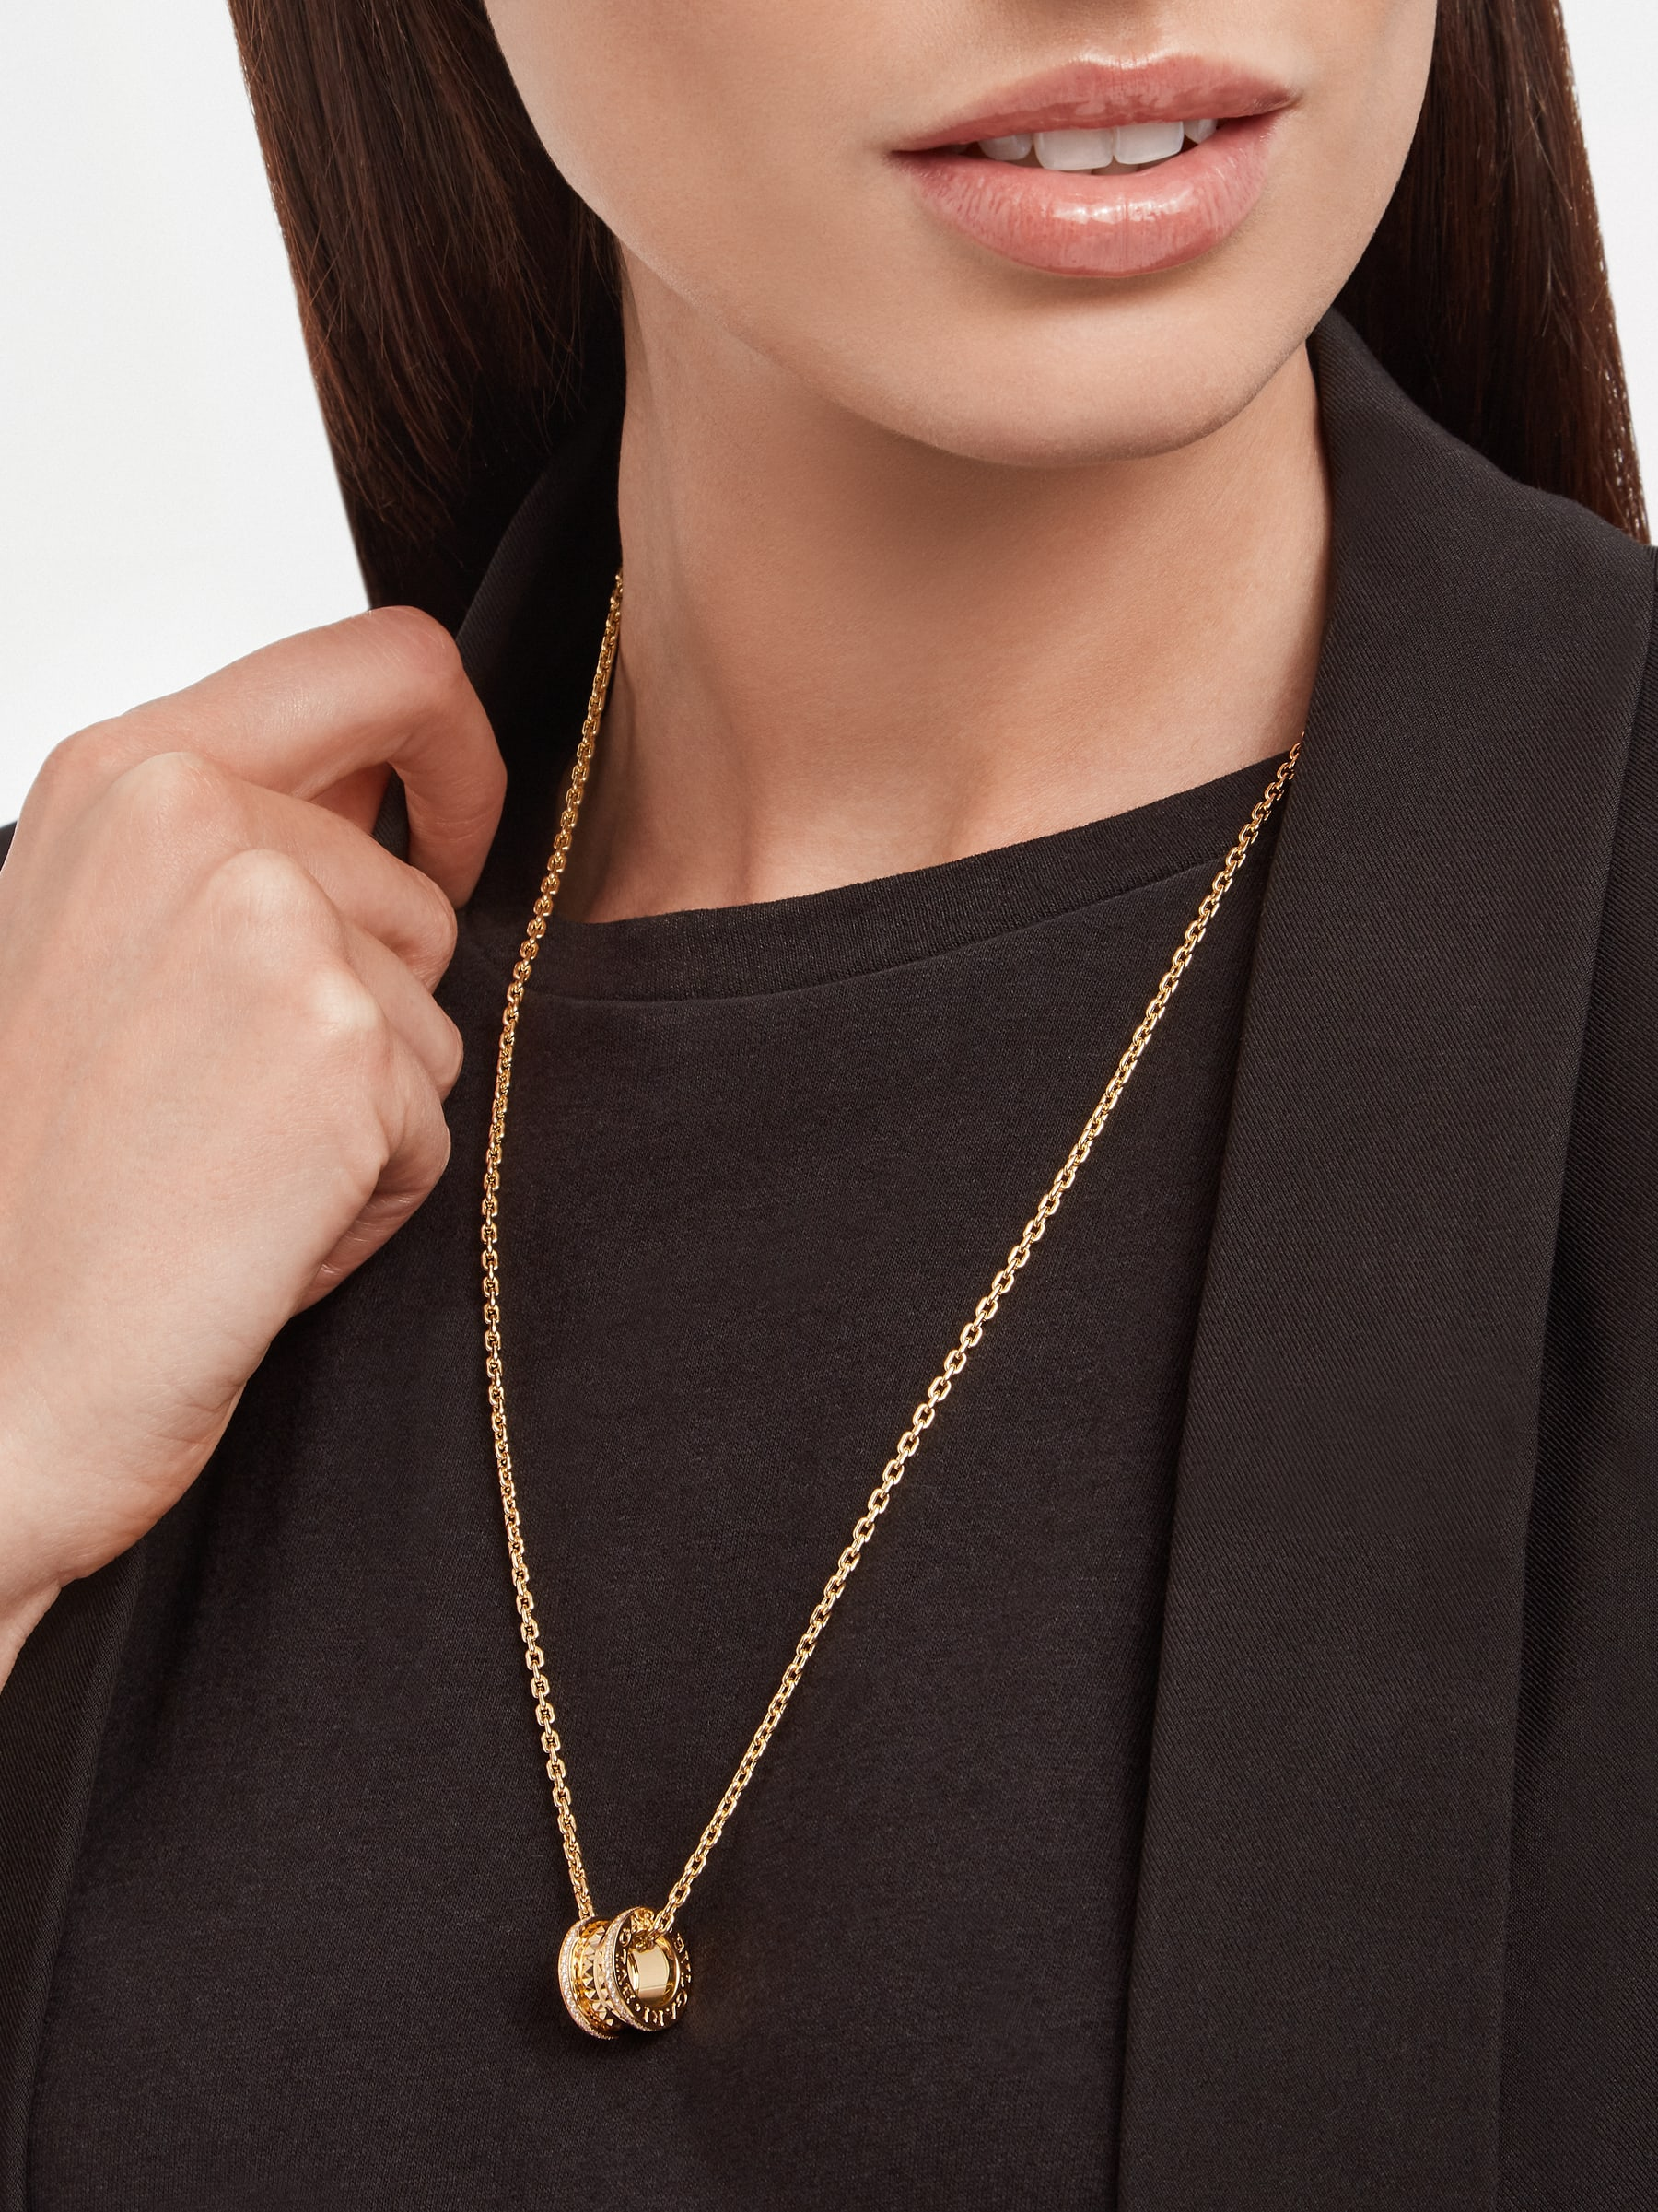 B.zero1 Rock pendant necklace in 18 kt yellow gold with studs set with pavé diamonds 358349 image 5